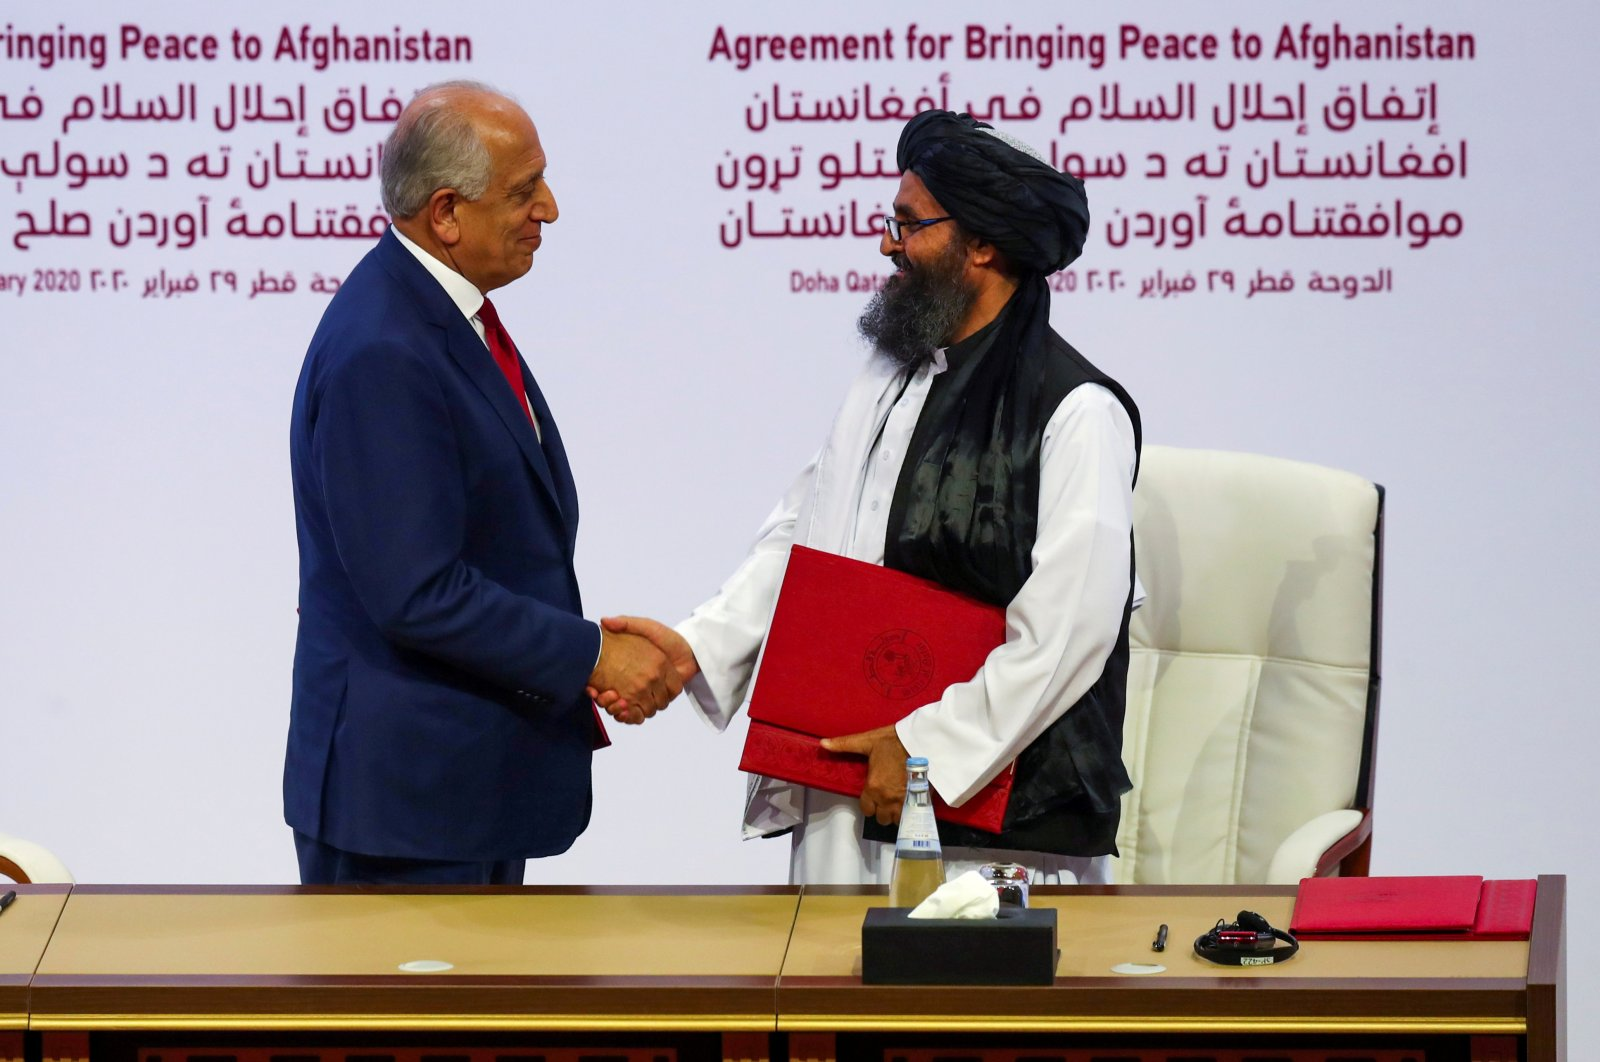 Leader of the Taliban delegation, Mullah Abdul Ghani Baradar (R), and U.S. envoy for peace in Afghanistan, Zalmay Khalilzad (L), shake hands after signing an agreement at a ceremony, Doha, Feb. 29, 2020. (REUTERS Photo)